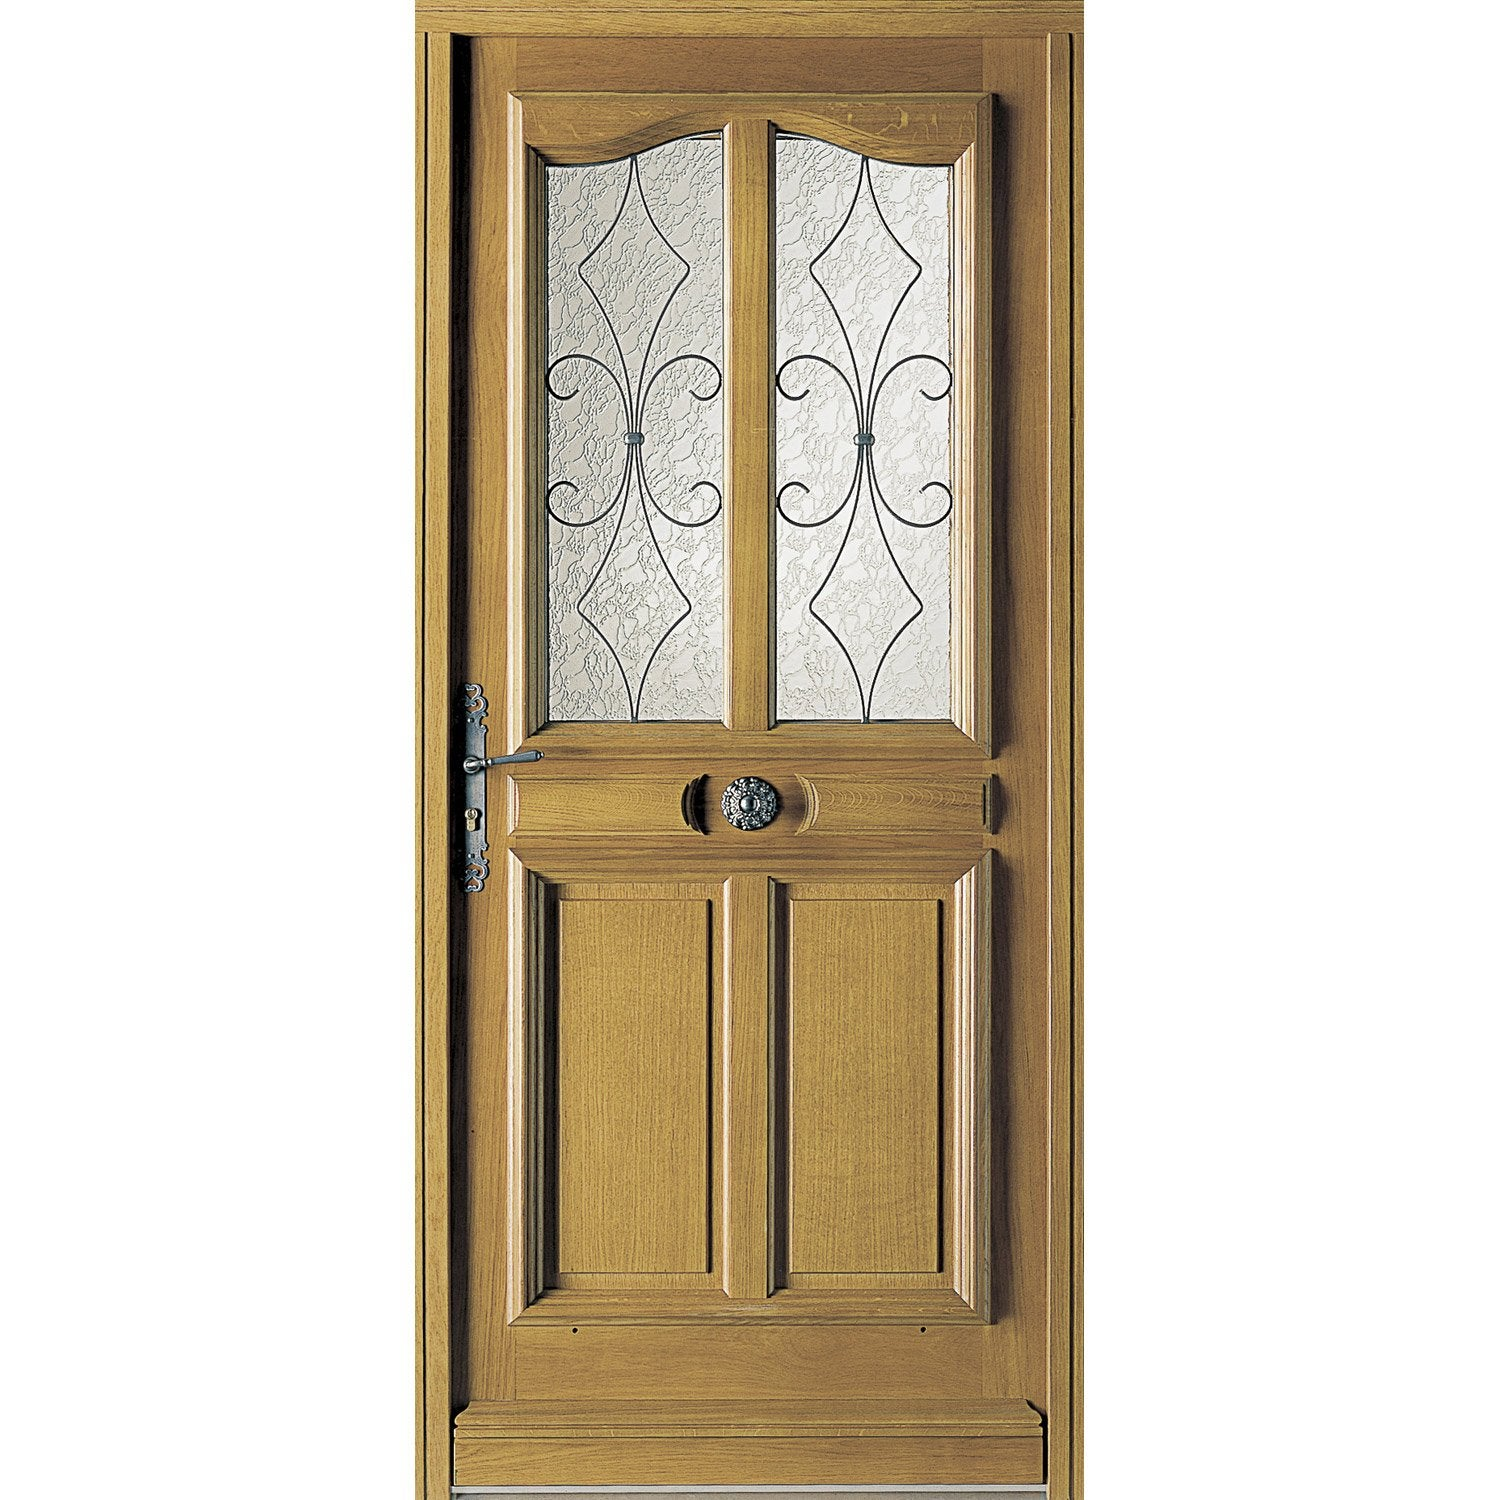 Porte d 39 entr e sur mesure en bois courchevel excellence for Leroy merlin porte d entree